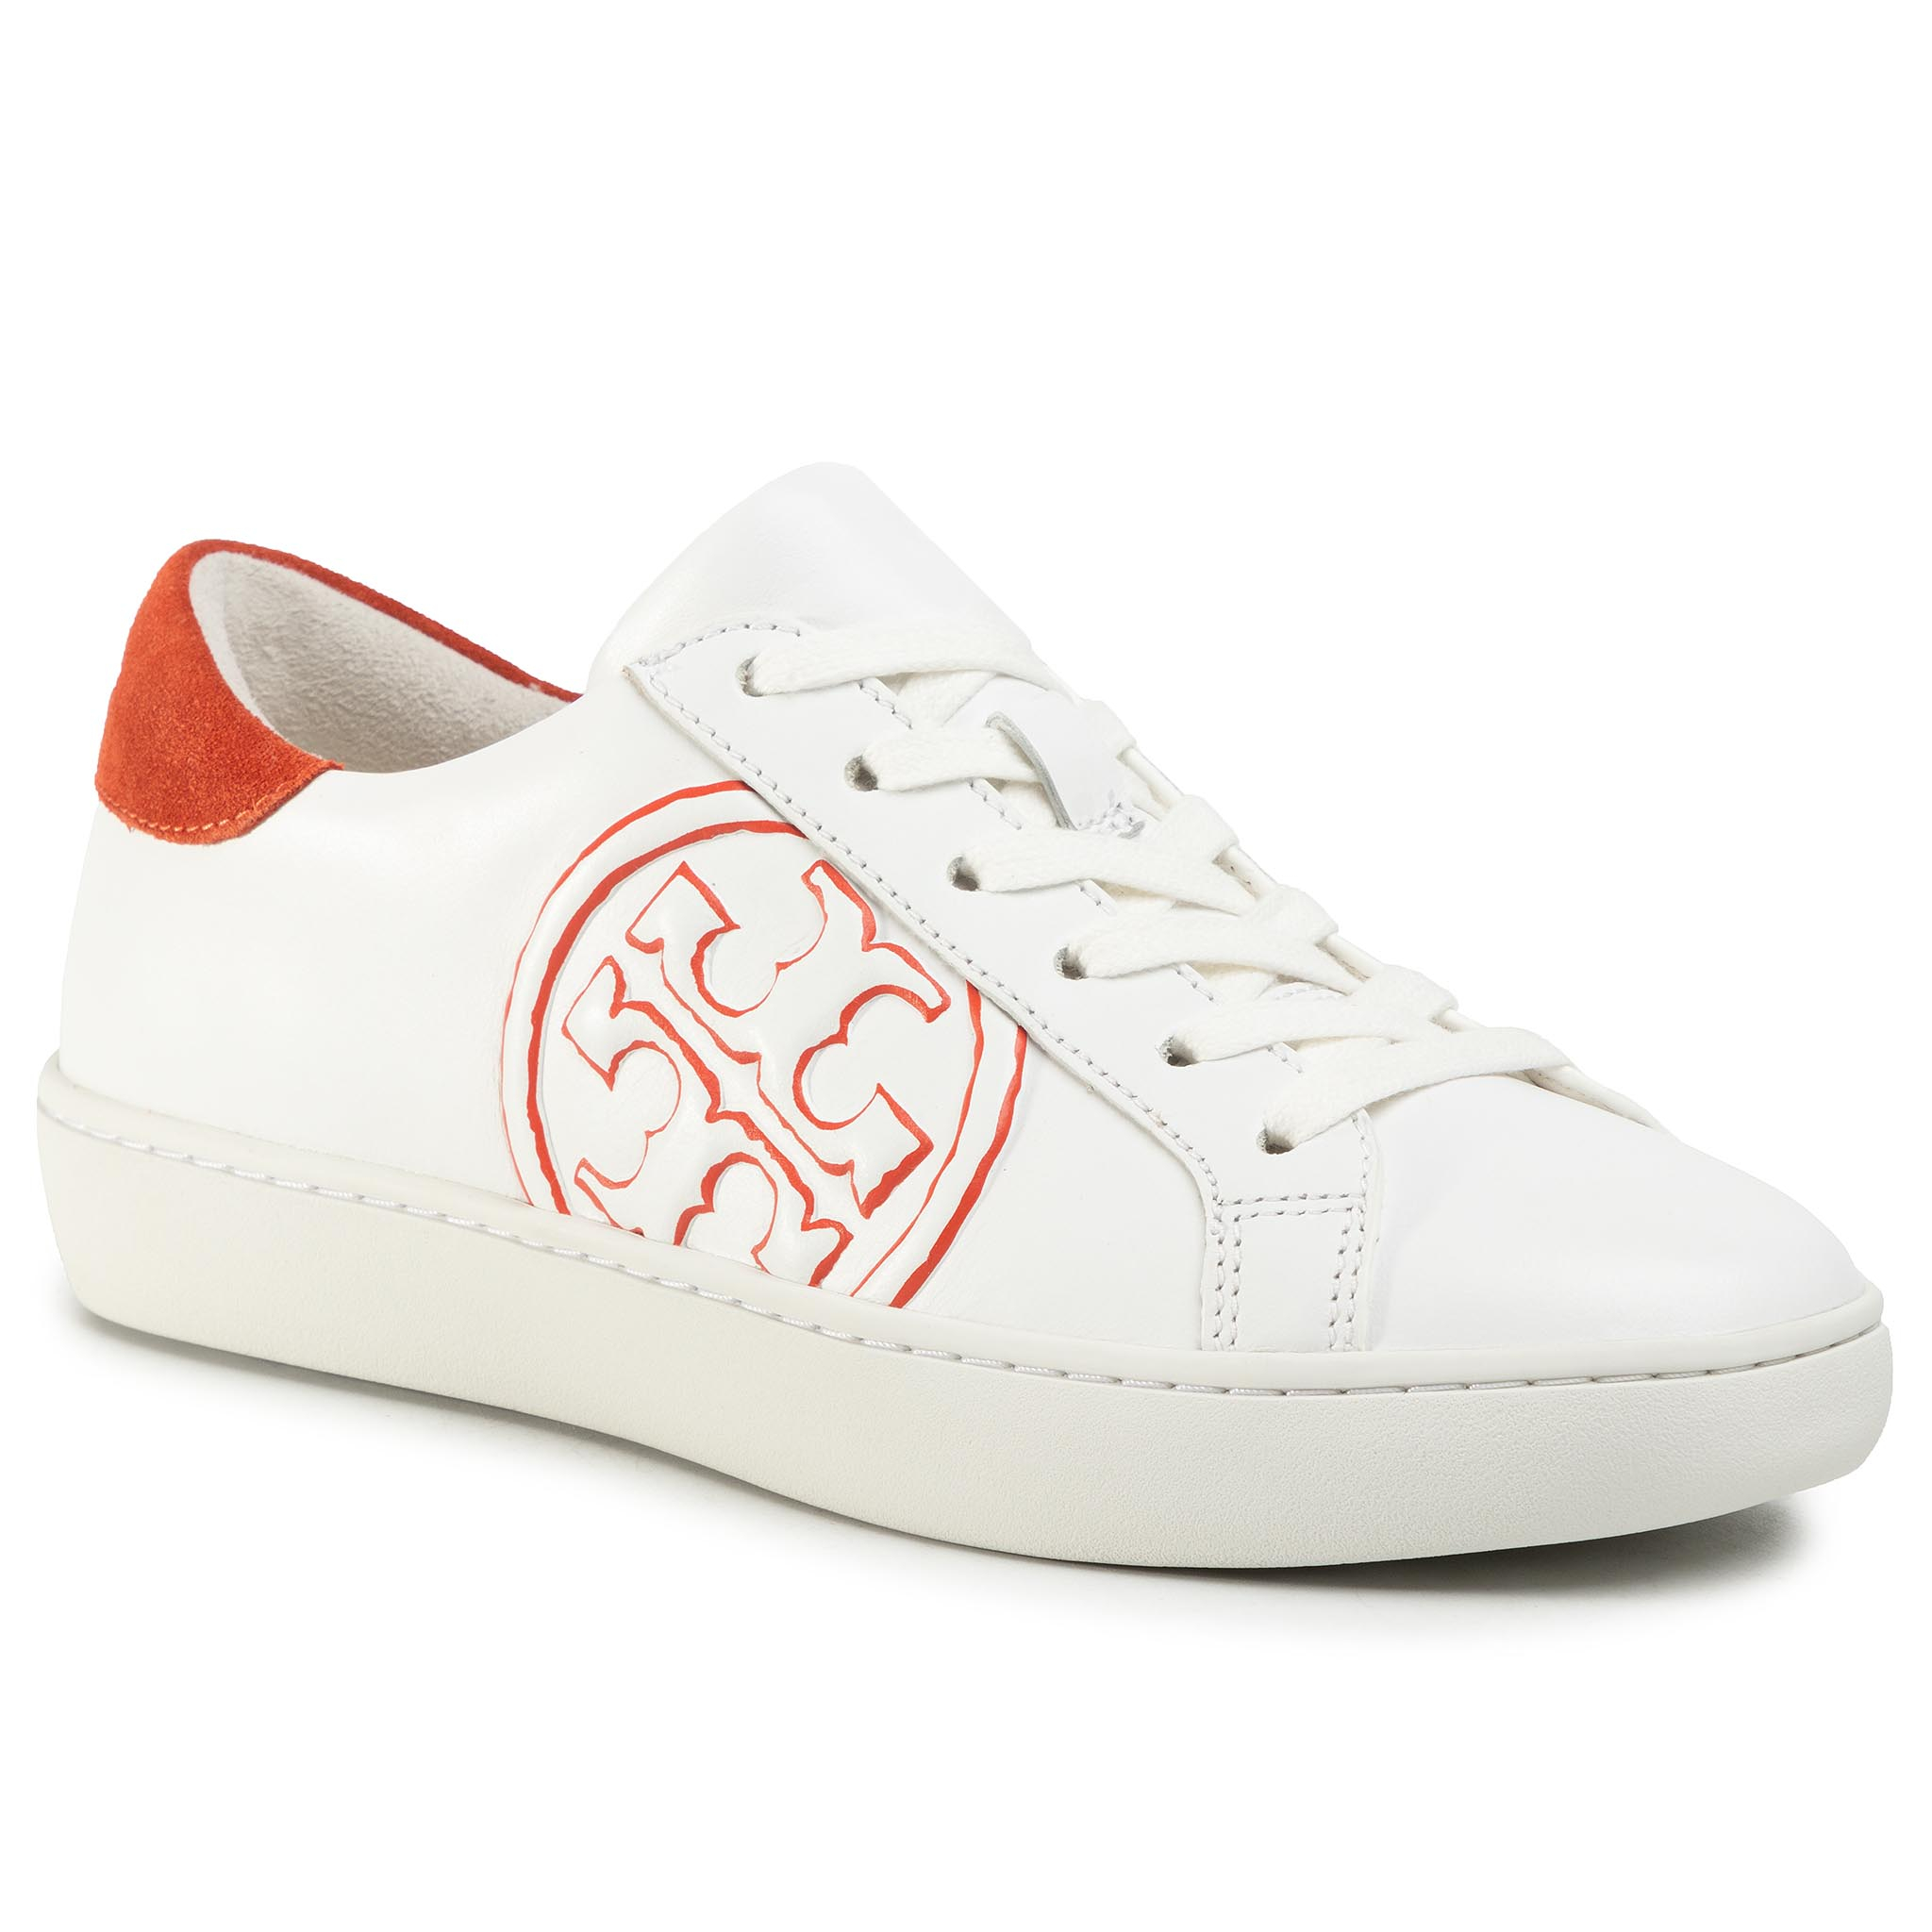 Sneakers TORY BURCH - T-Logo Sneaker 60847 Snow White/Canyon Orange 103